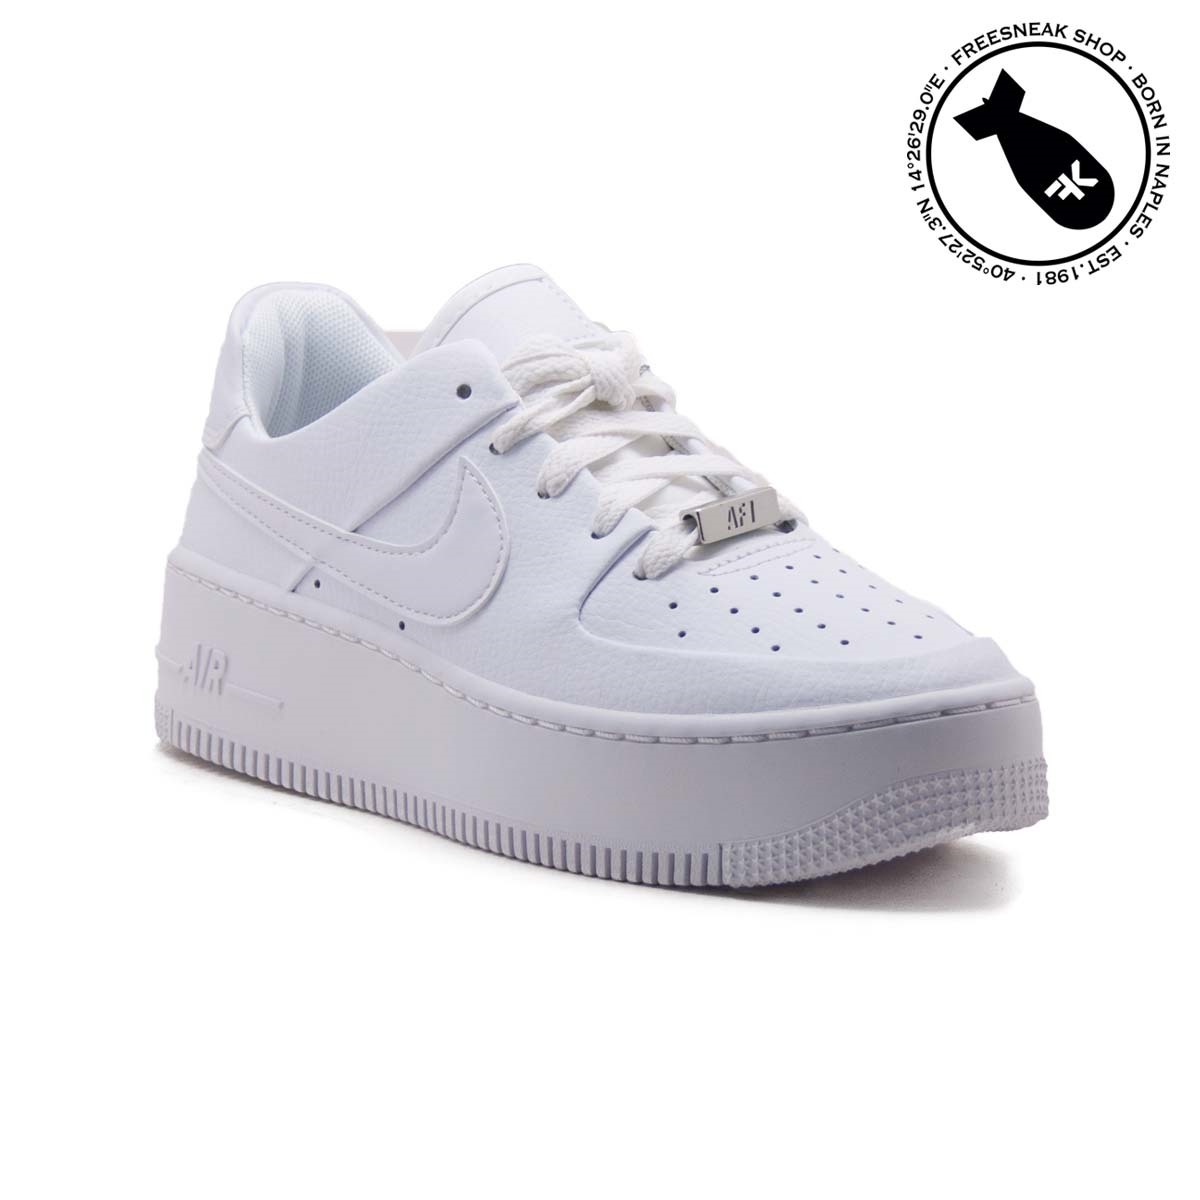 nike air force 1 suola alta